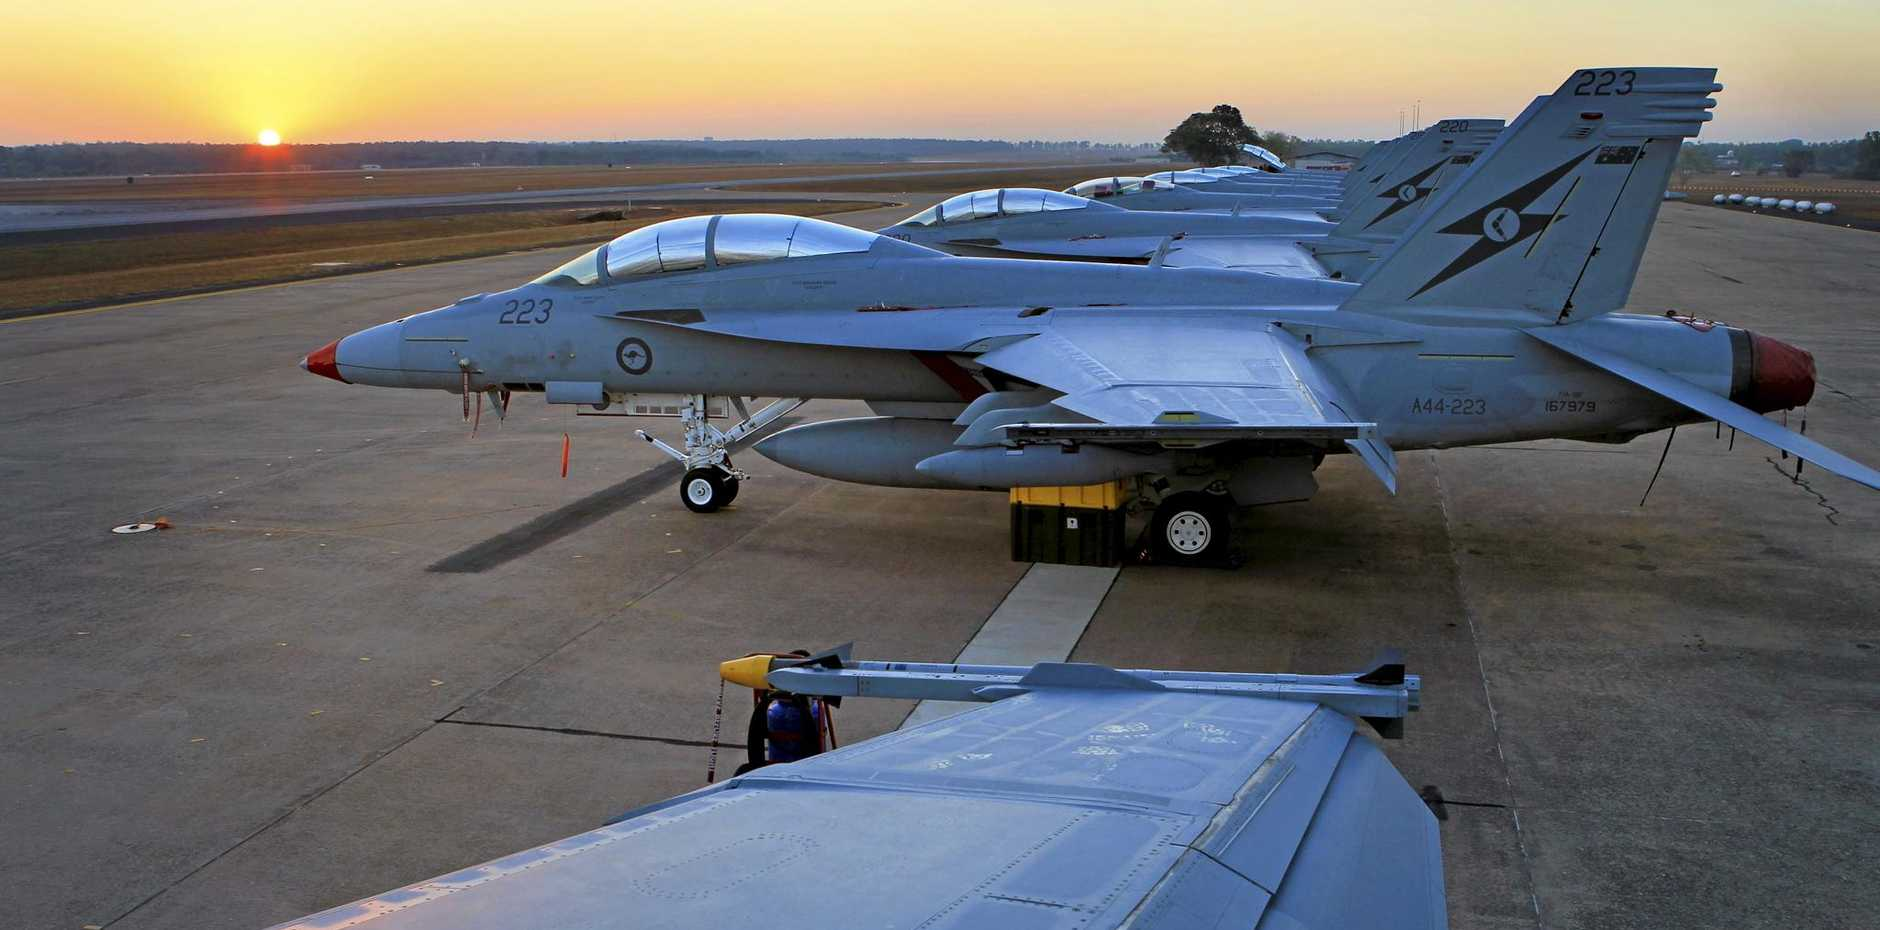 The F/A-18F Super Hornets from RAAF Base Amberley are participating in Exercise Pitch Black.